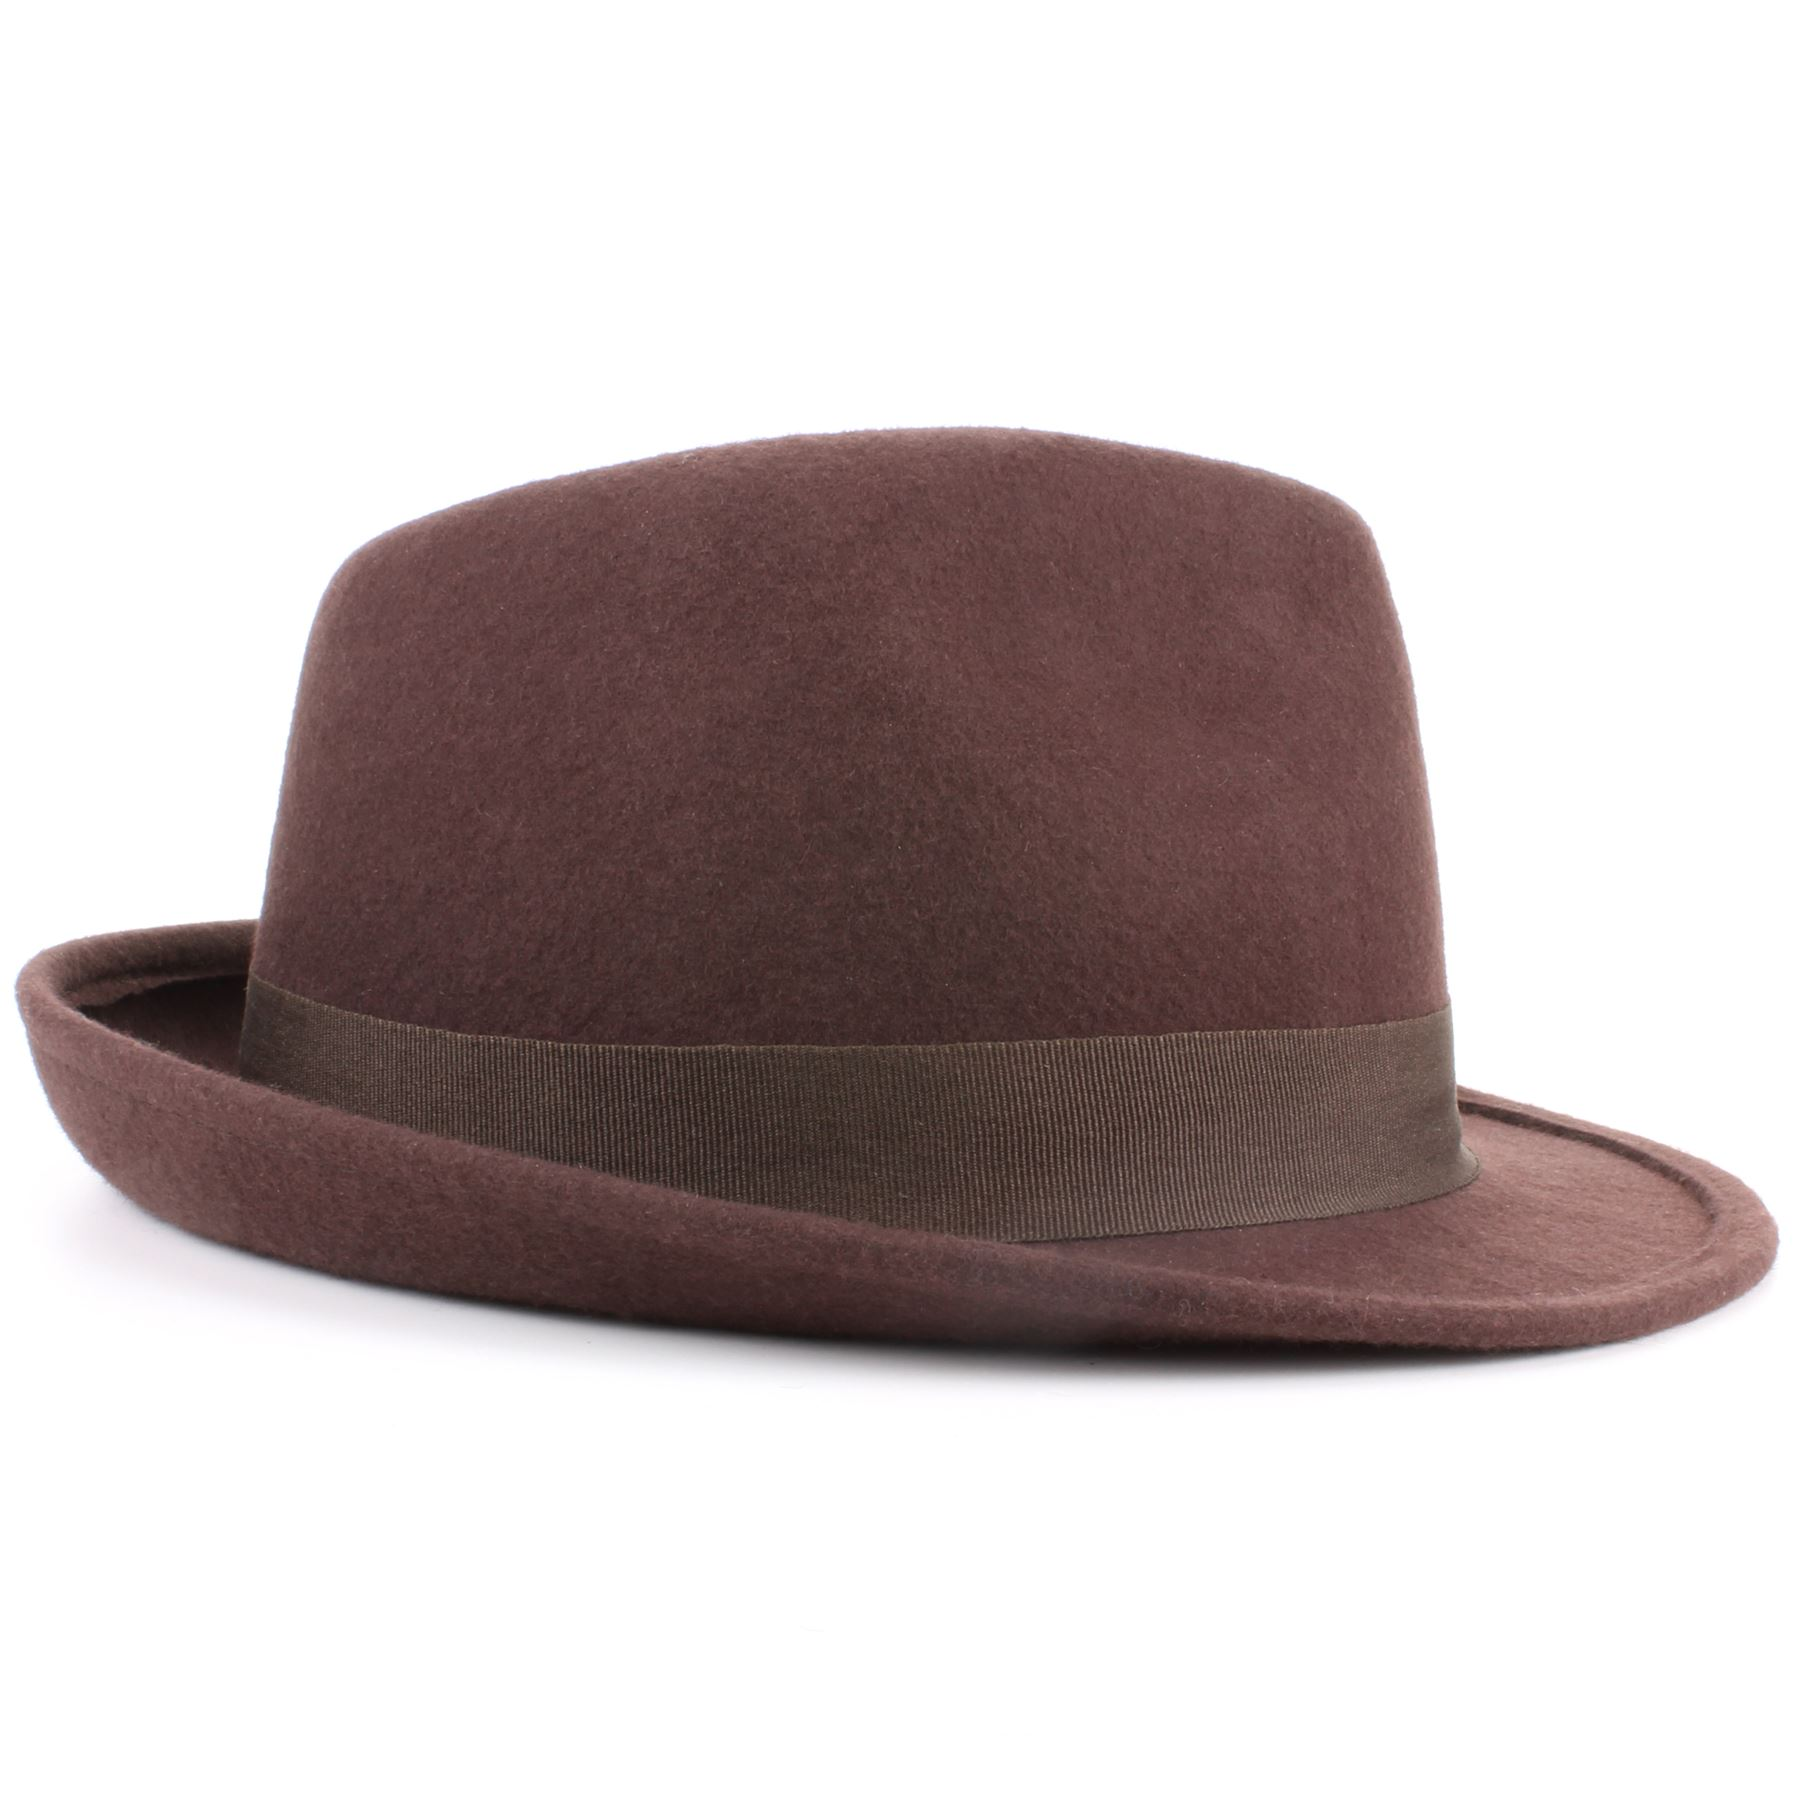 Mens Summer Fedora Hat, Poly braid Bound edge, Crushable Porkpie Hat EPf